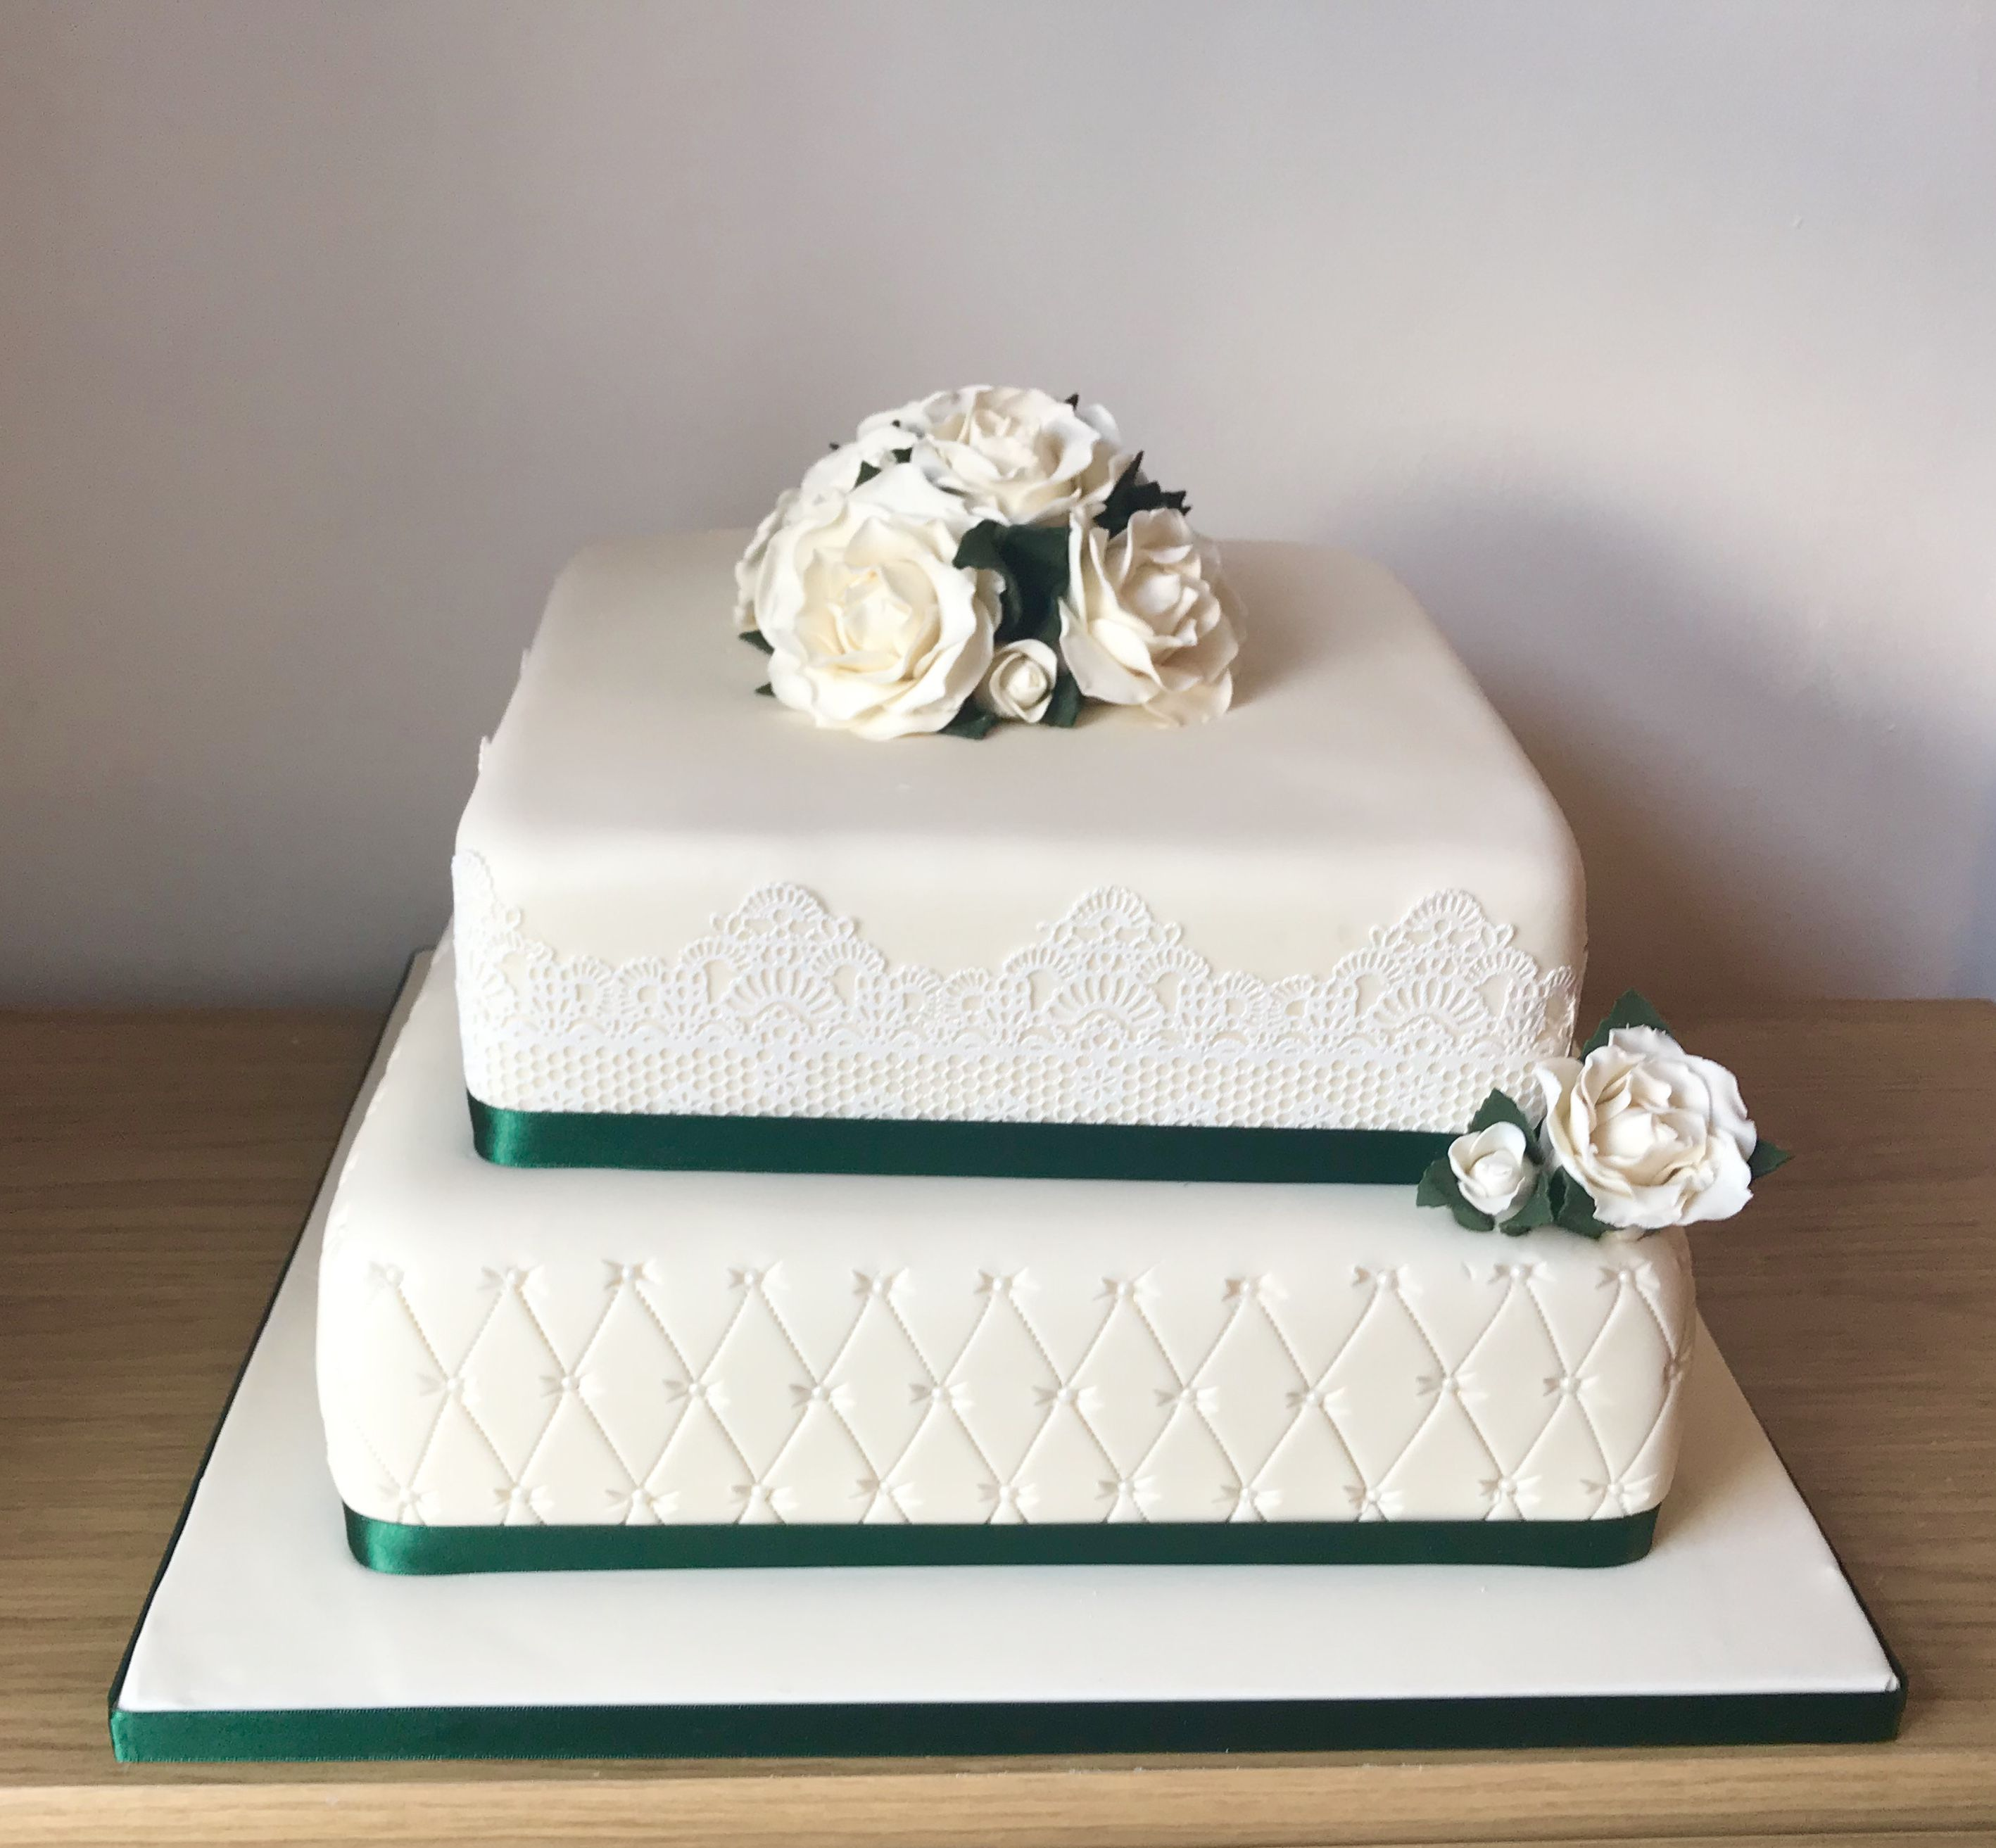 Wedding cake with edible cake lace and handmade flowers | Taylormade ...